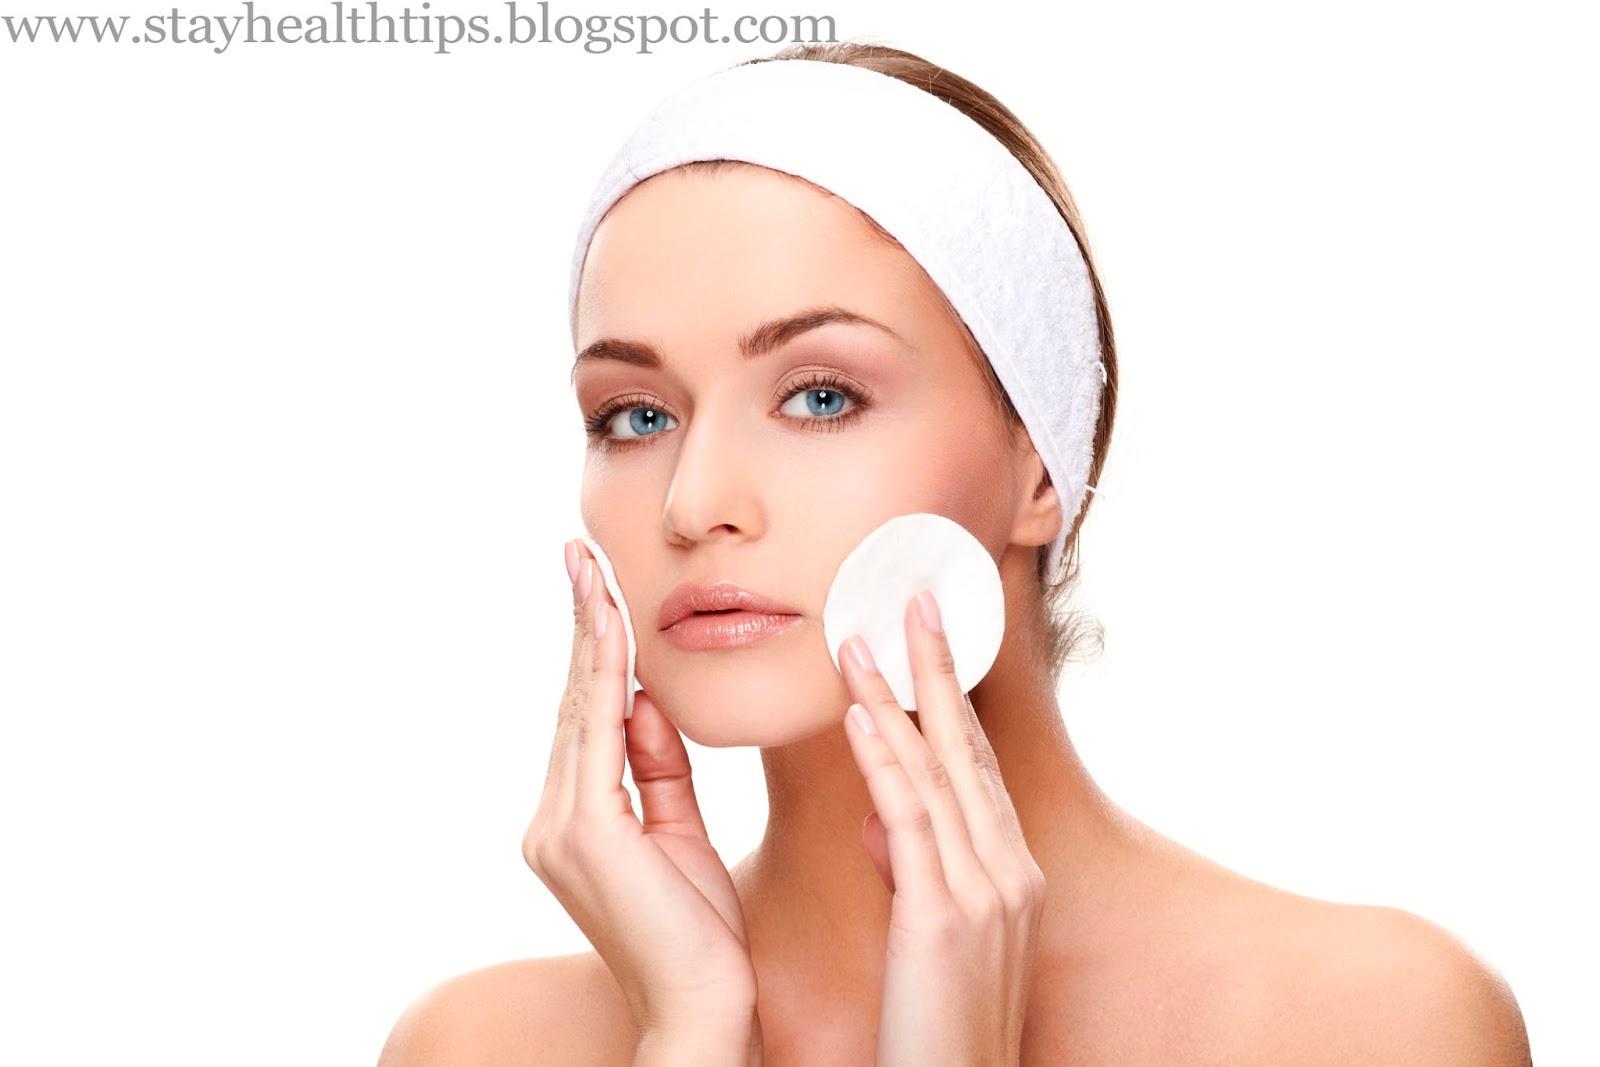 health and beauty tips for women  - Best Healthy And Beauty Tips For Women : Pak101.com